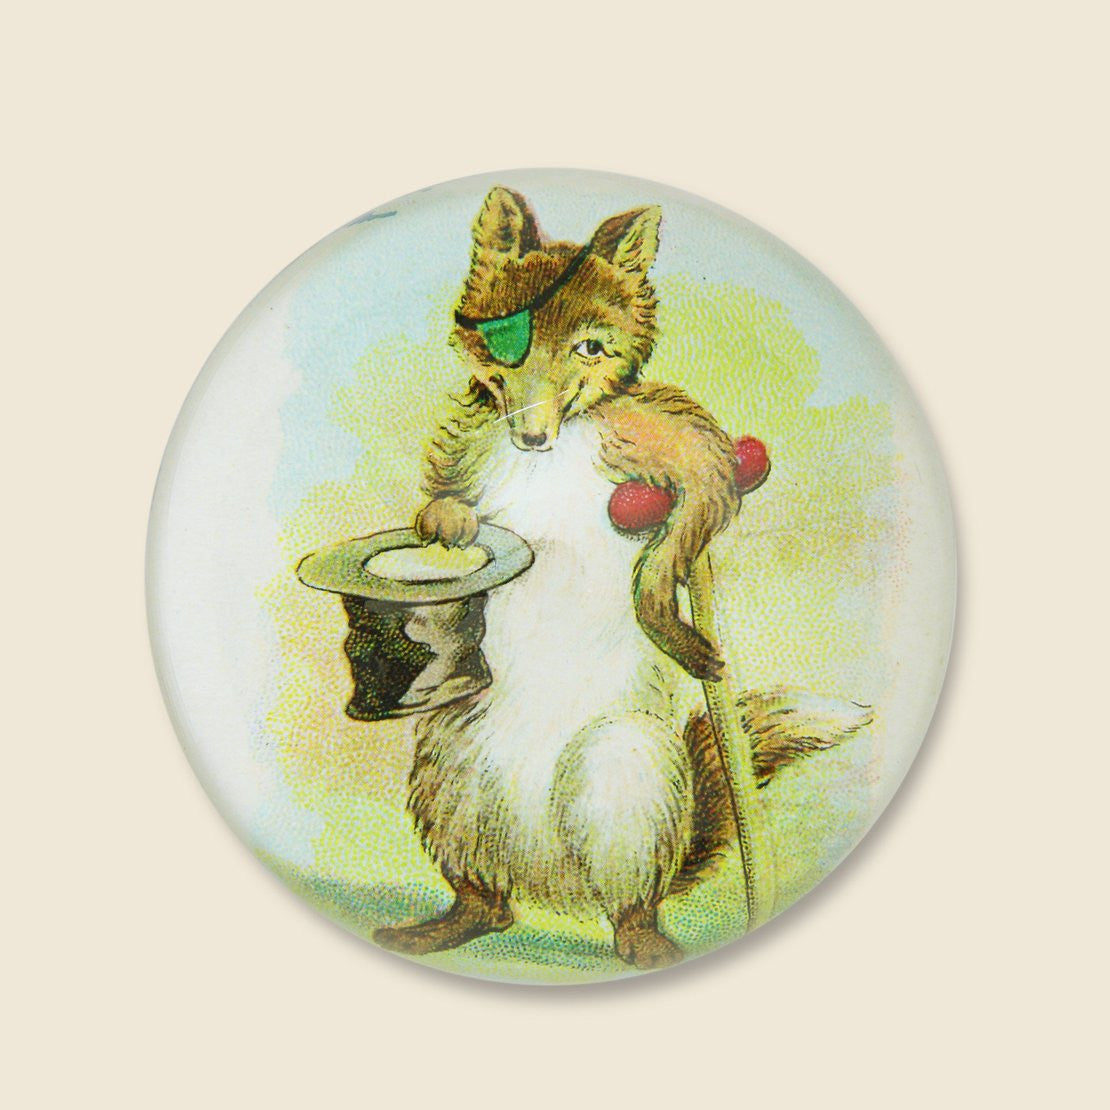 John Derian Dome Paperweight - Fox with Cane